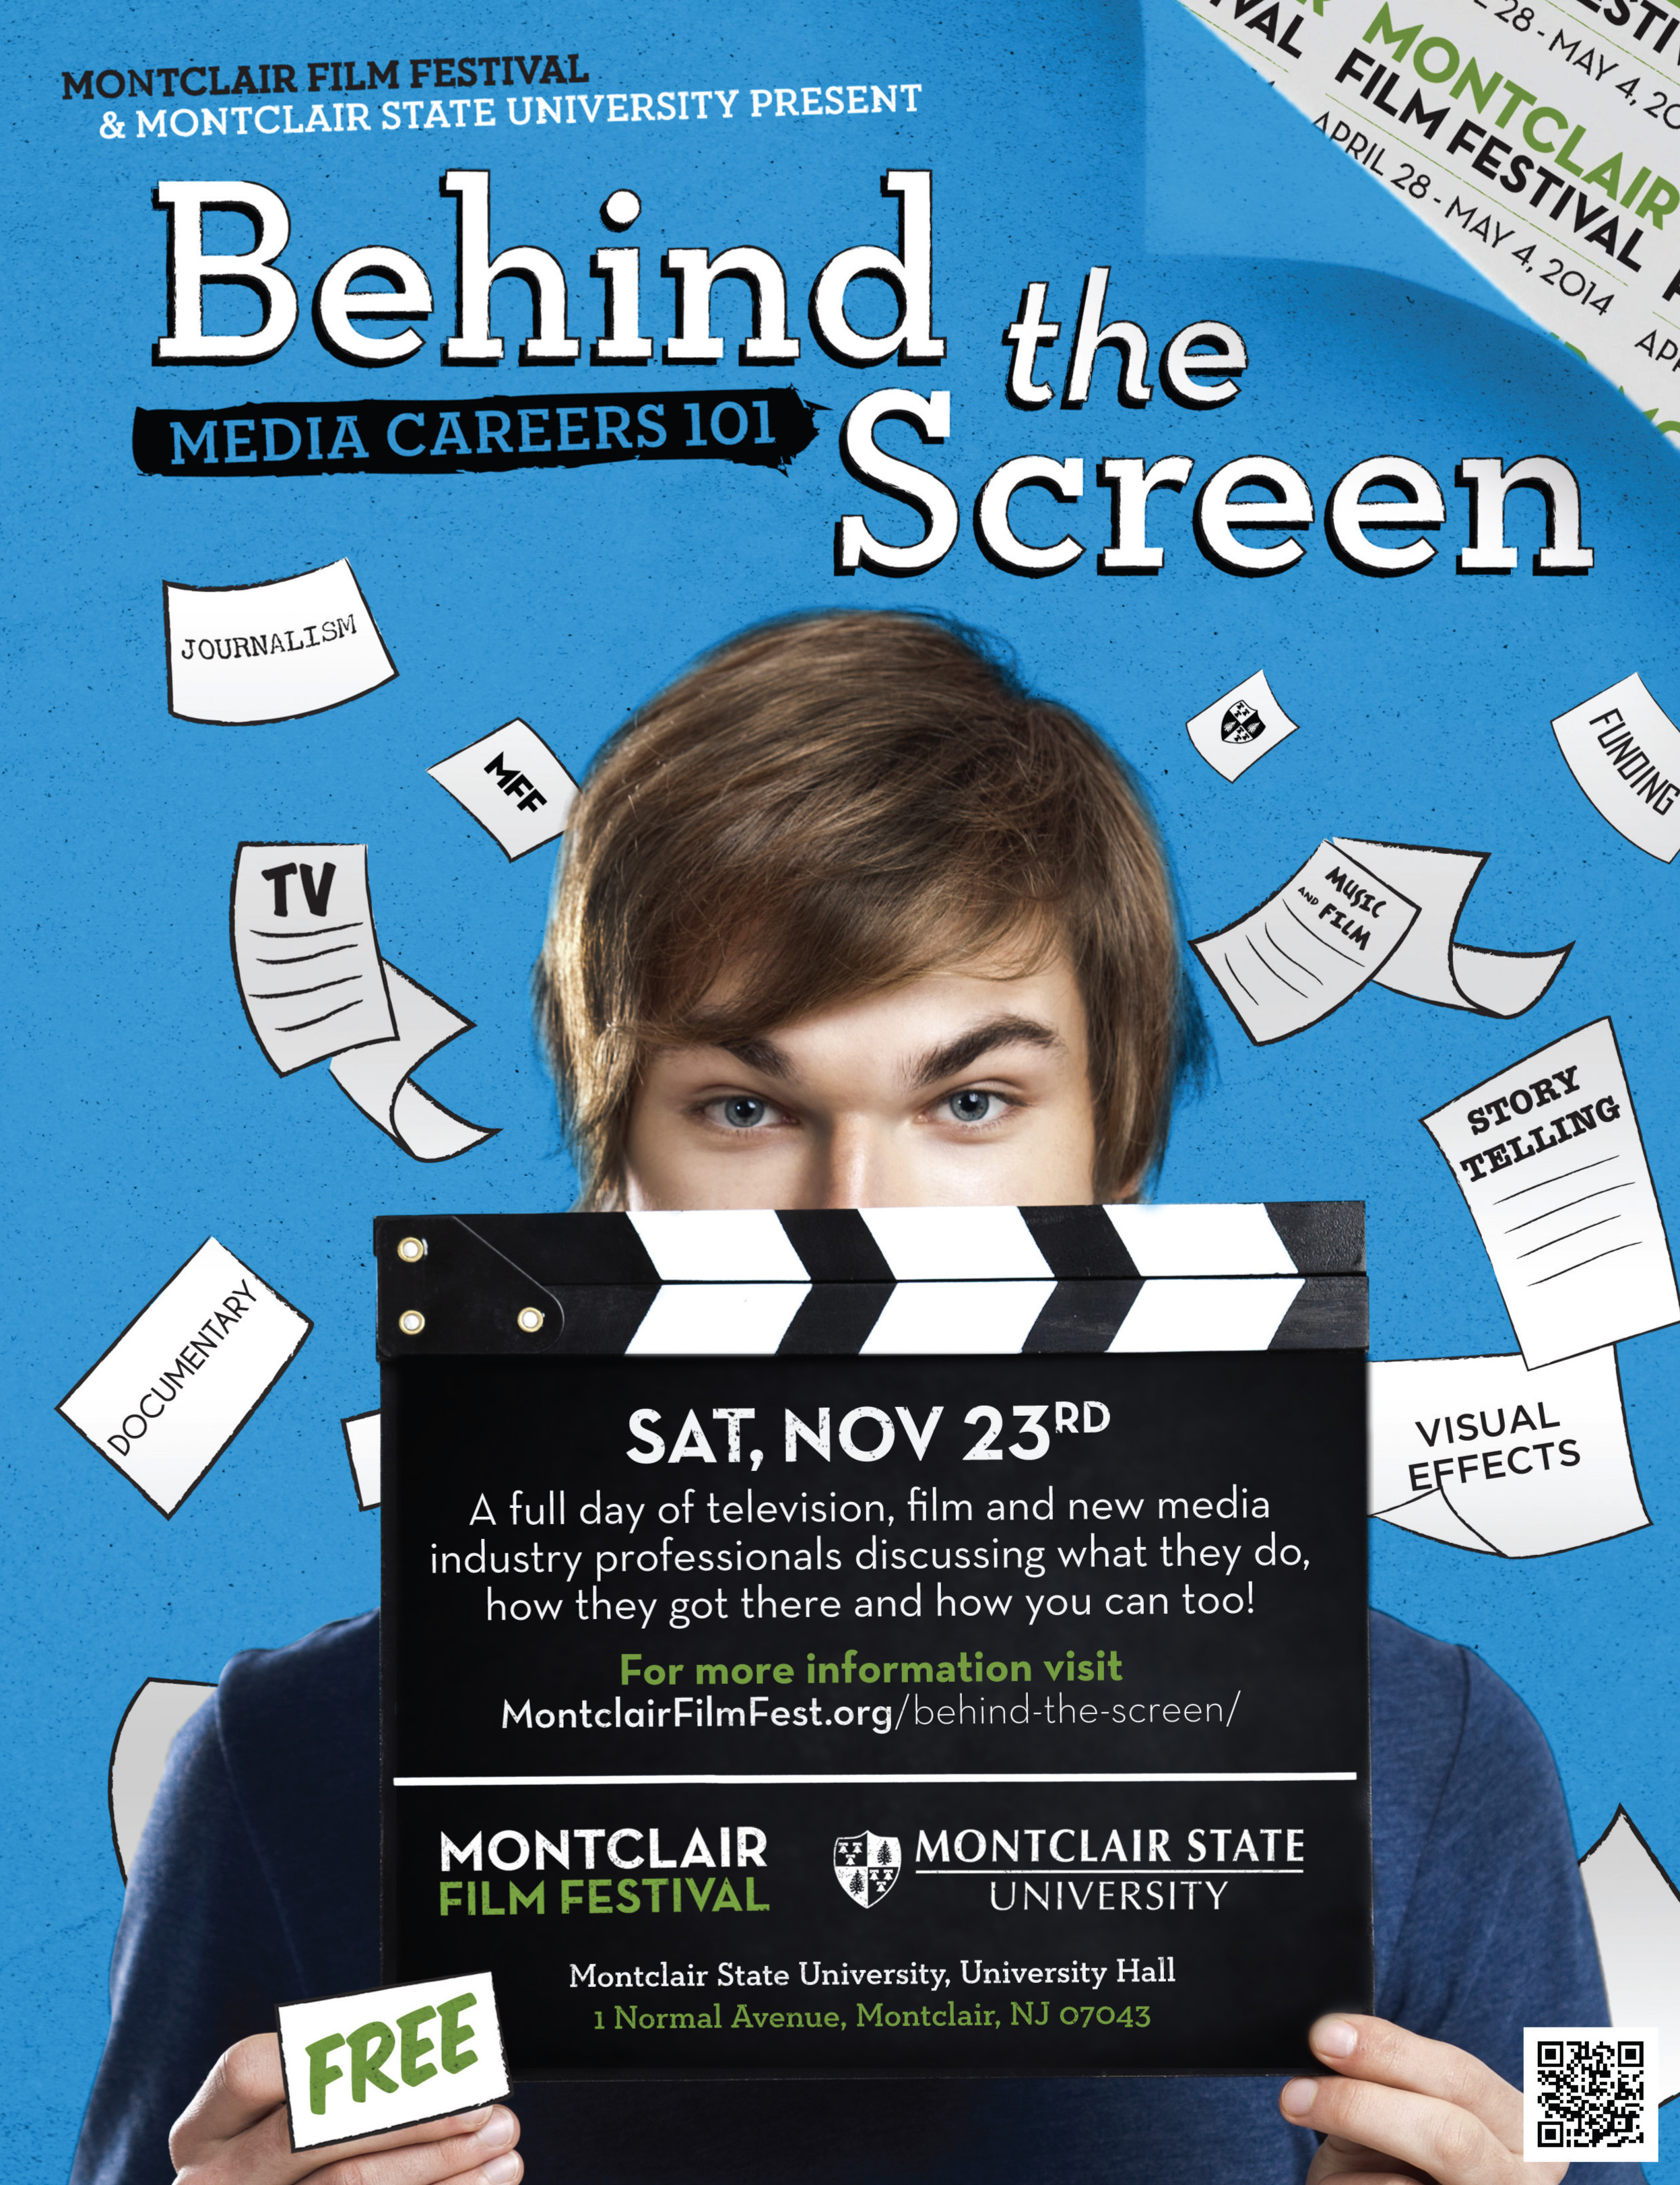 Behind the Screen 2013 Flyer